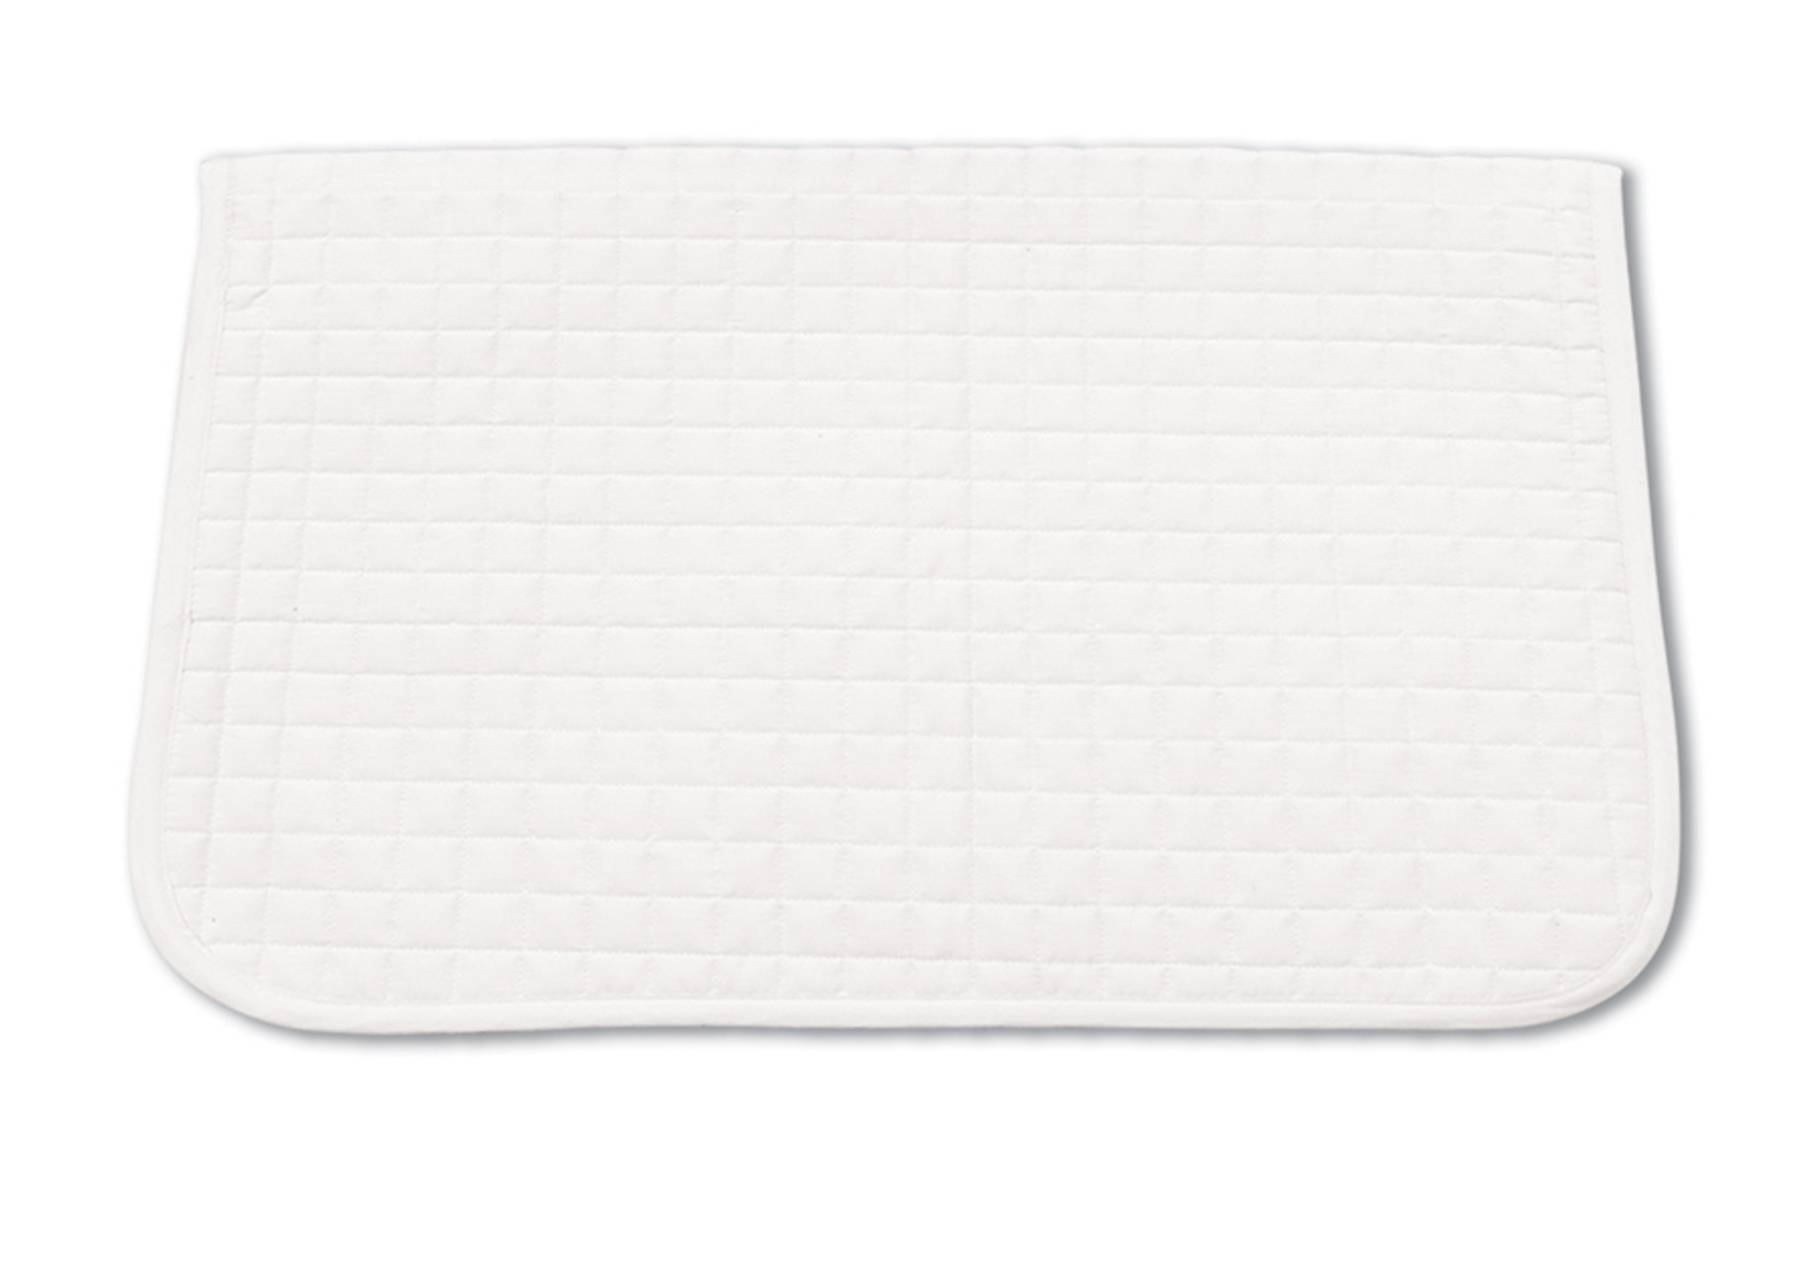 Equi-Essentials Baby Pad - 3 Pack